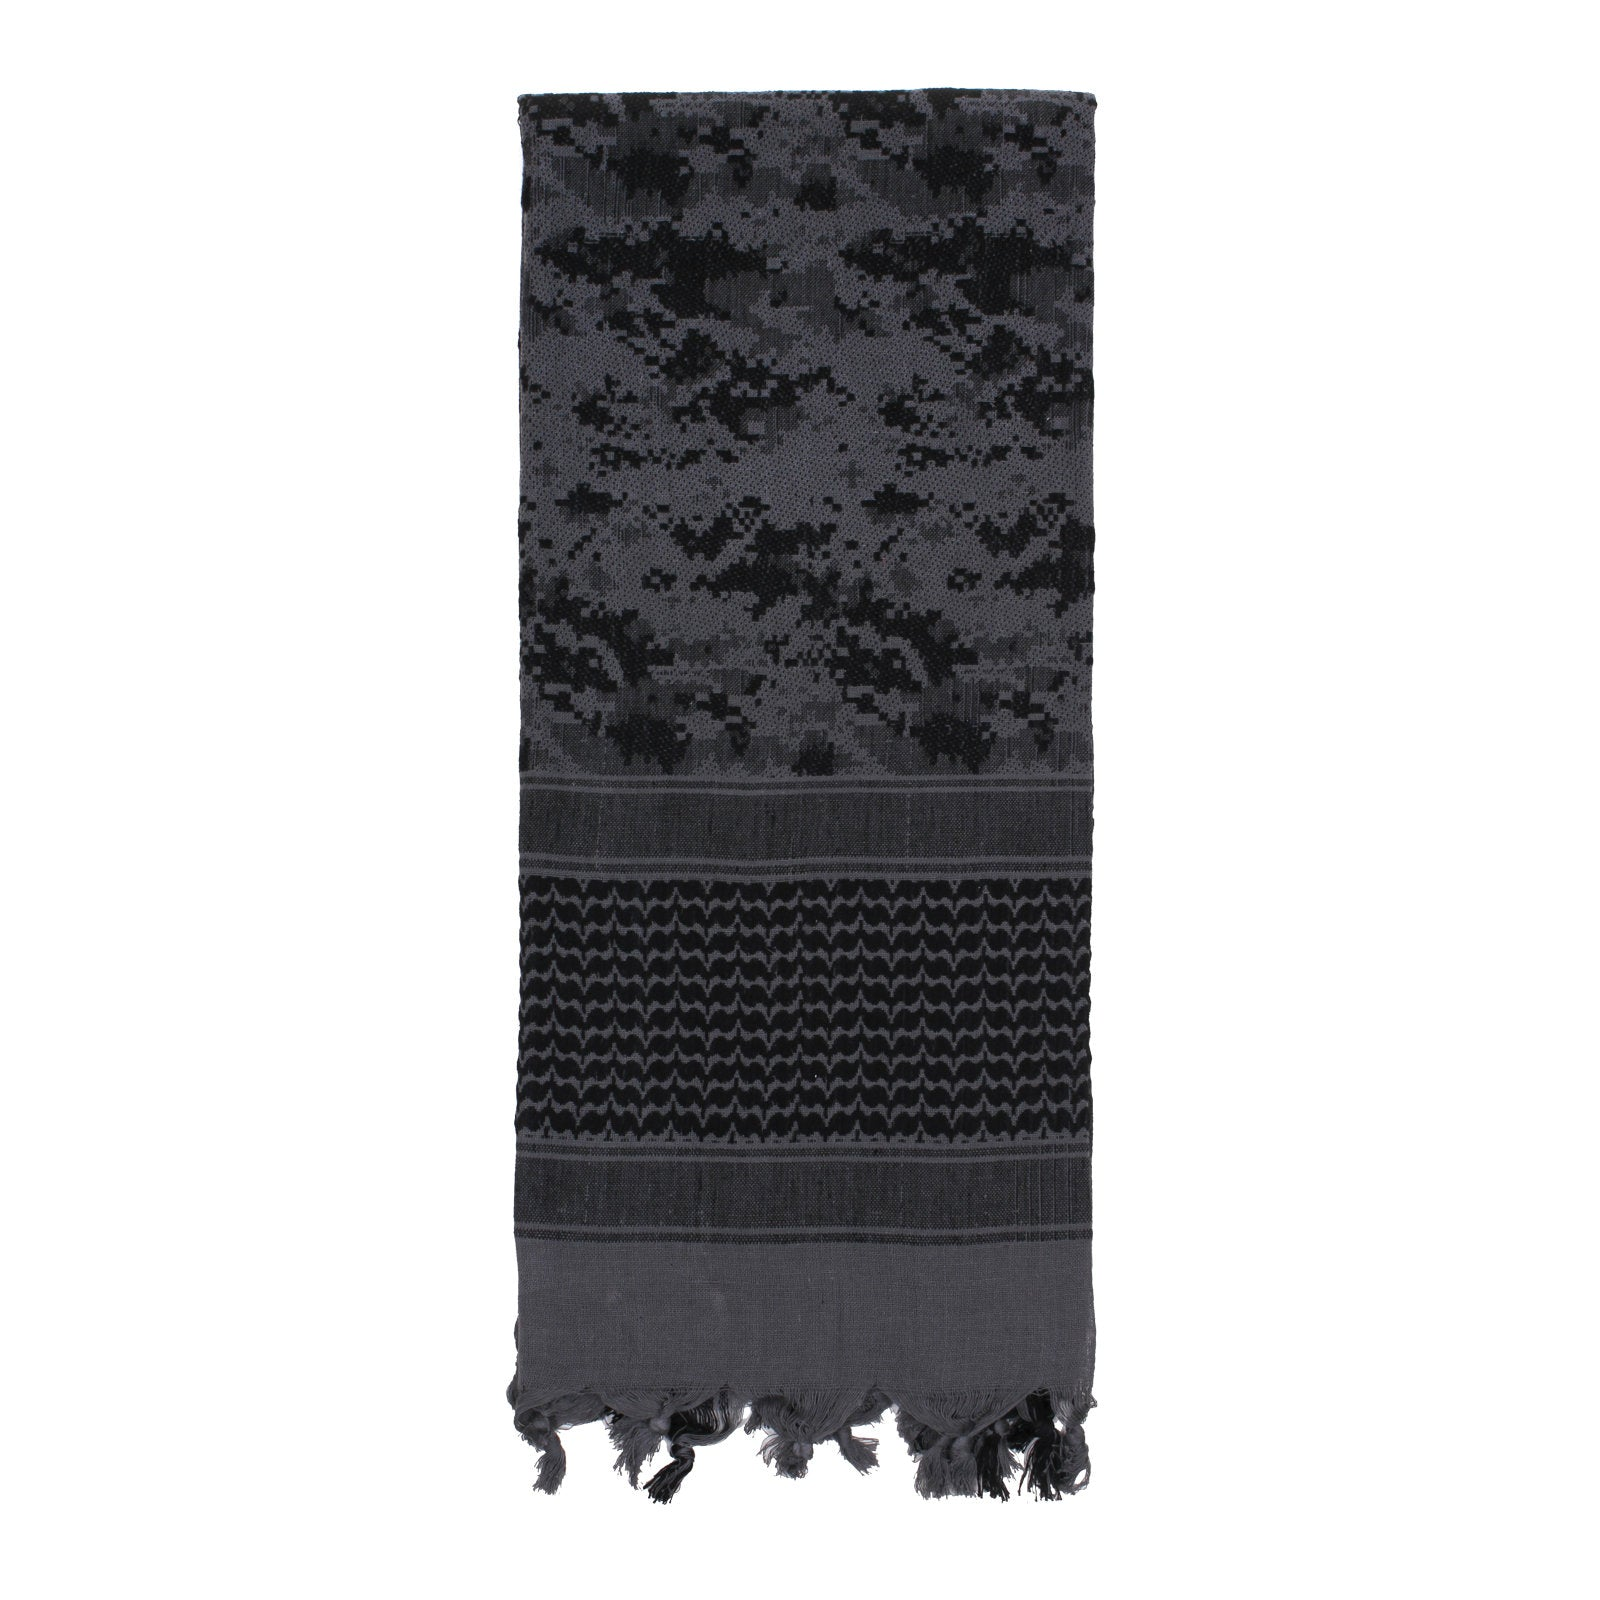 Shemagh Tactical Desert Scarf Subdued Urban Digital